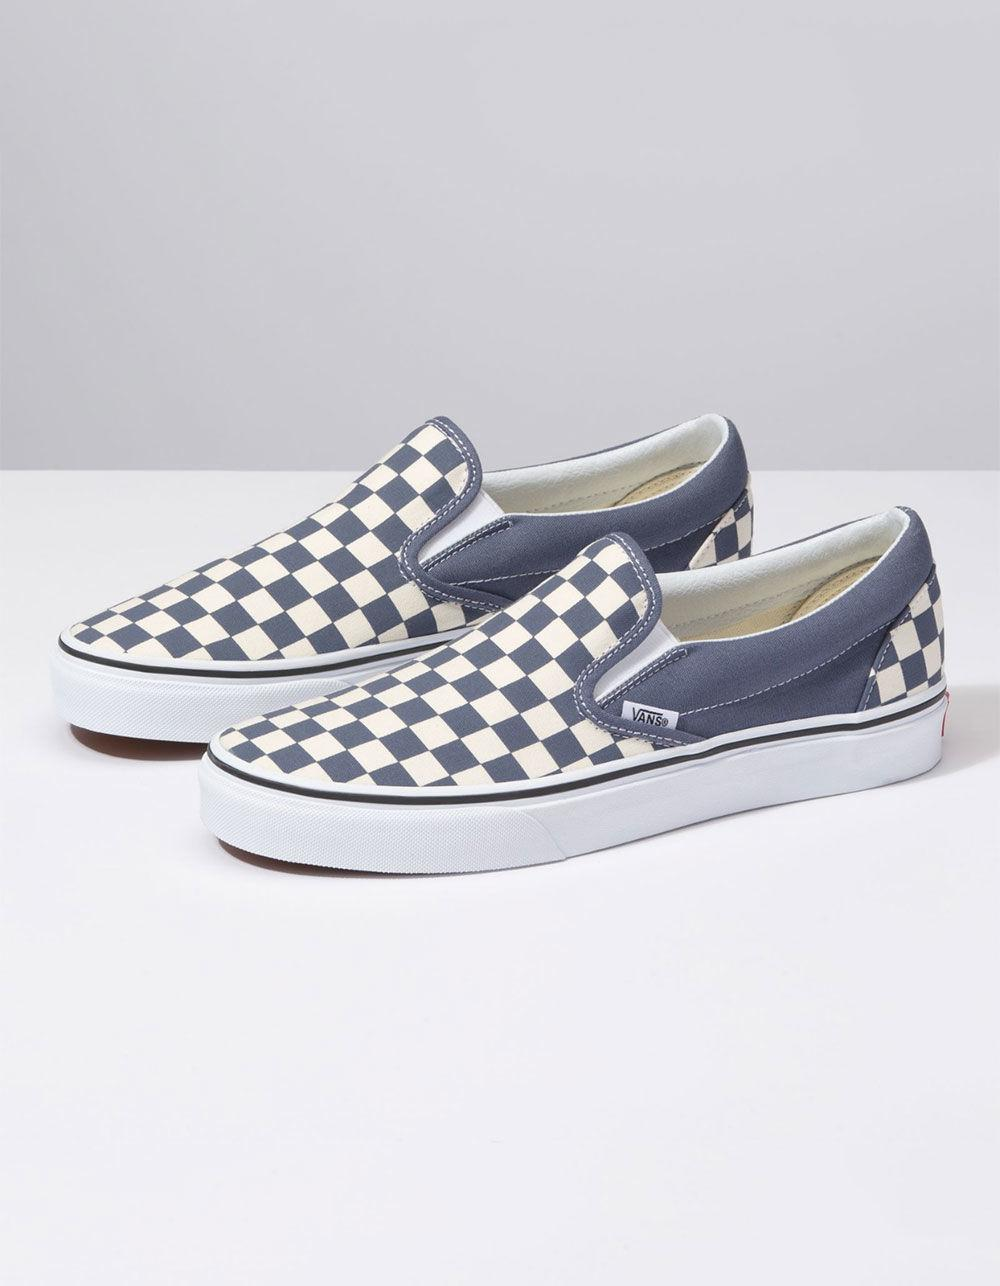 ac24fc639315 Lyst - Vans Checkerboard Grisaille   True White Classic Slip-on Shoes in  White for Men